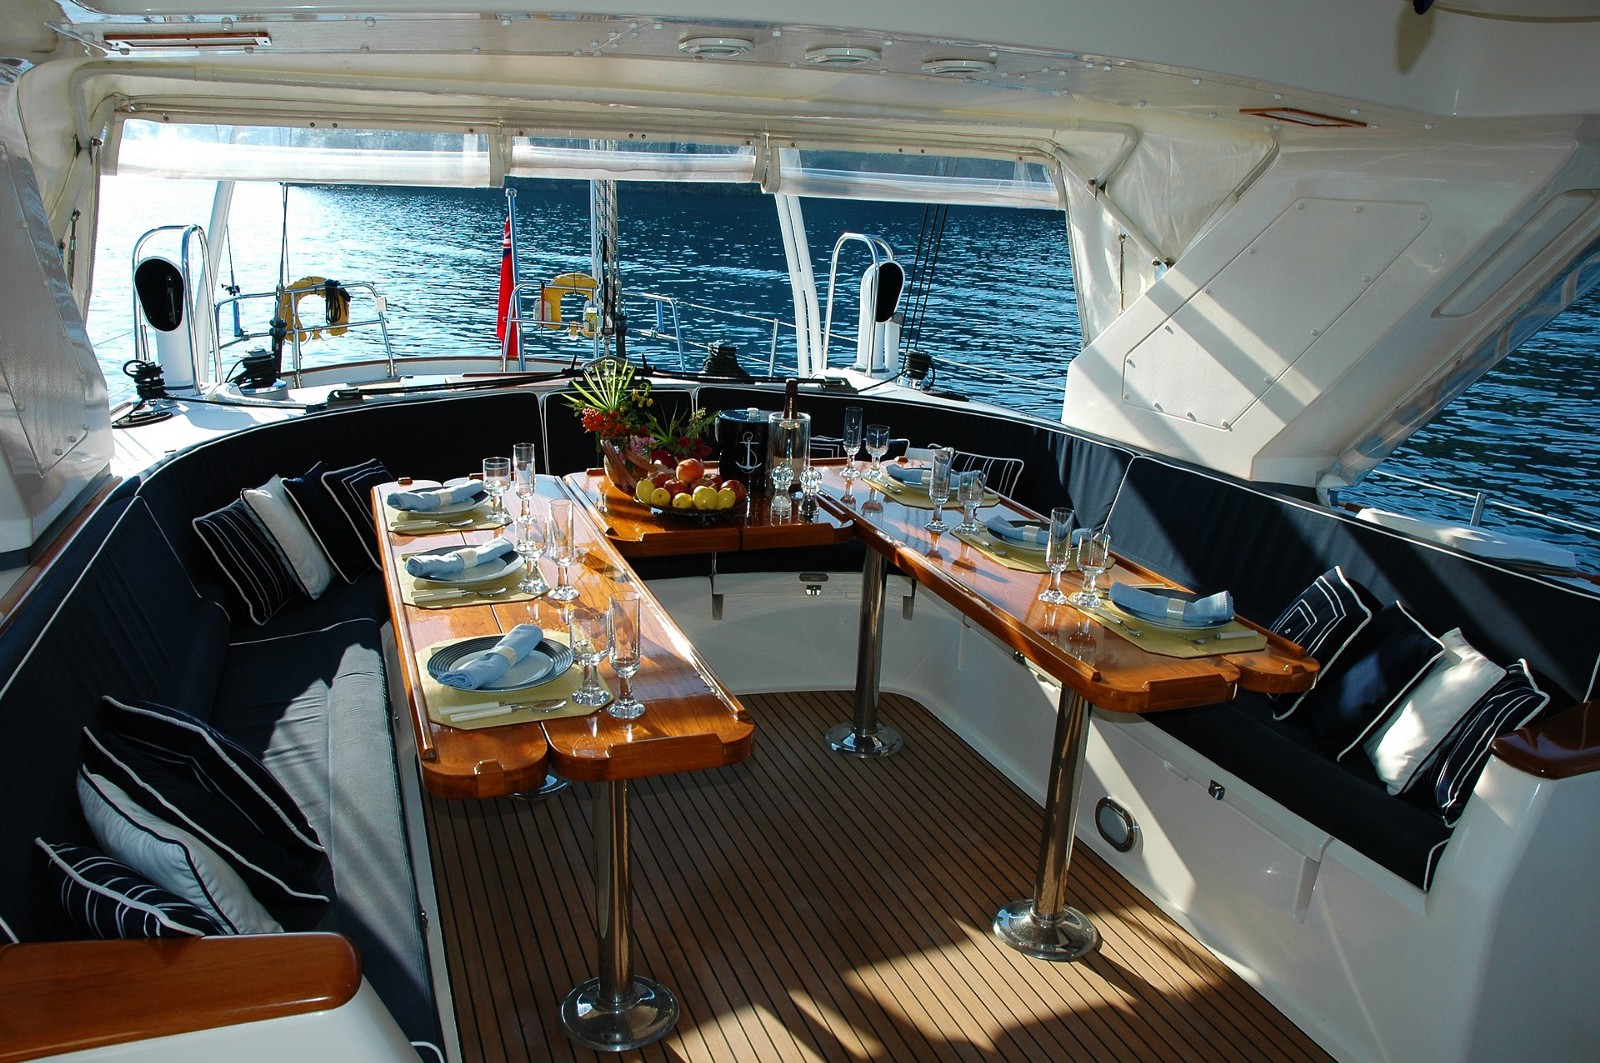 Yacht Charter in the Maldives — Something You Should Not Miss